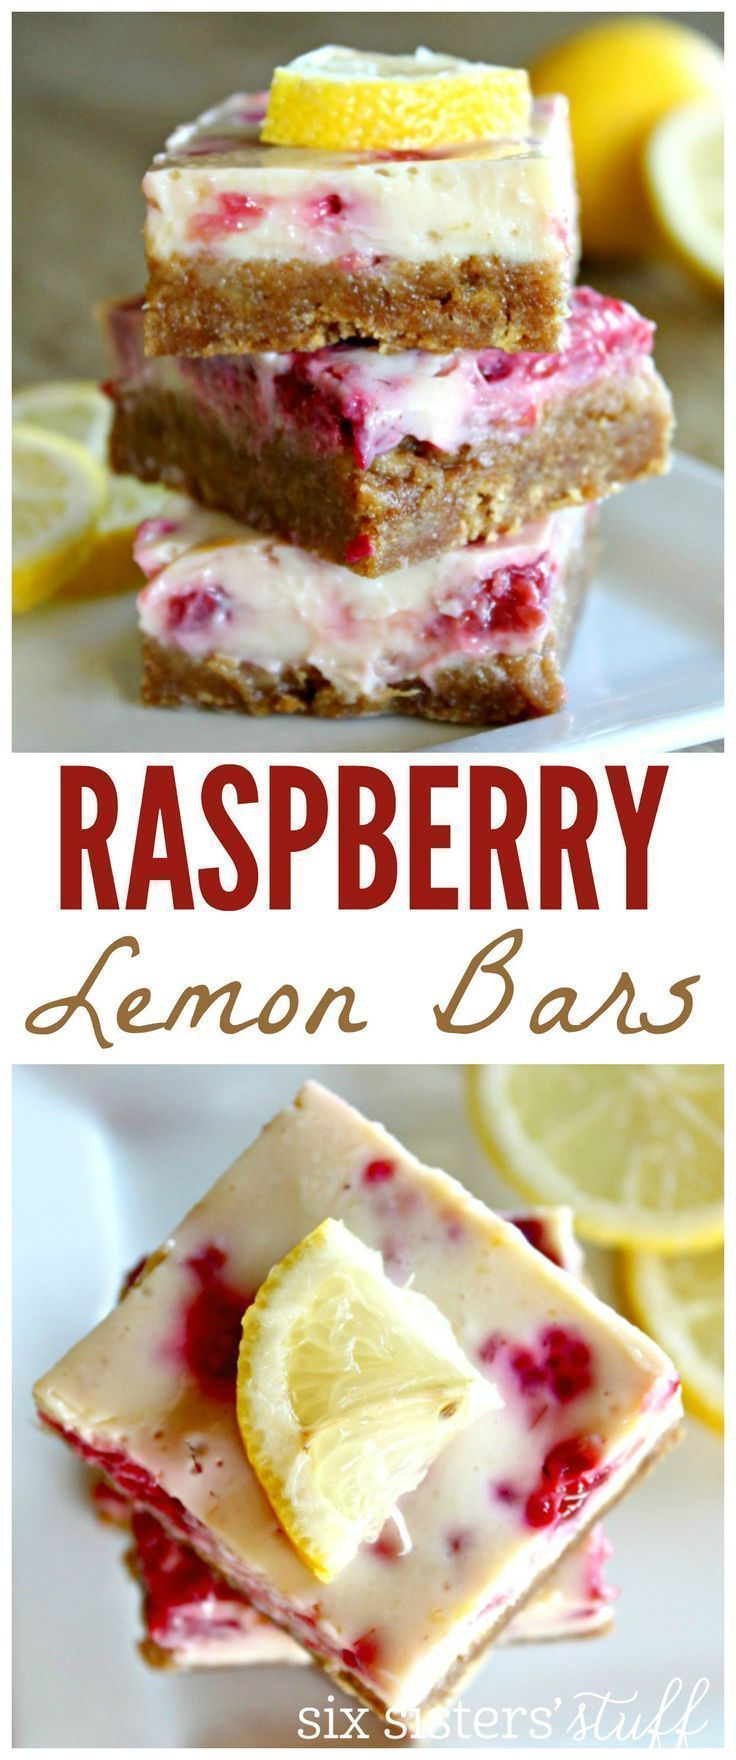 Raspberry Lemon Bars from Six Sisters Stuff | This is one of our best recipes and perfect for Easter dessert or a potluck dish. #easter #dessert #bestdesserts #sixsistersrecipes